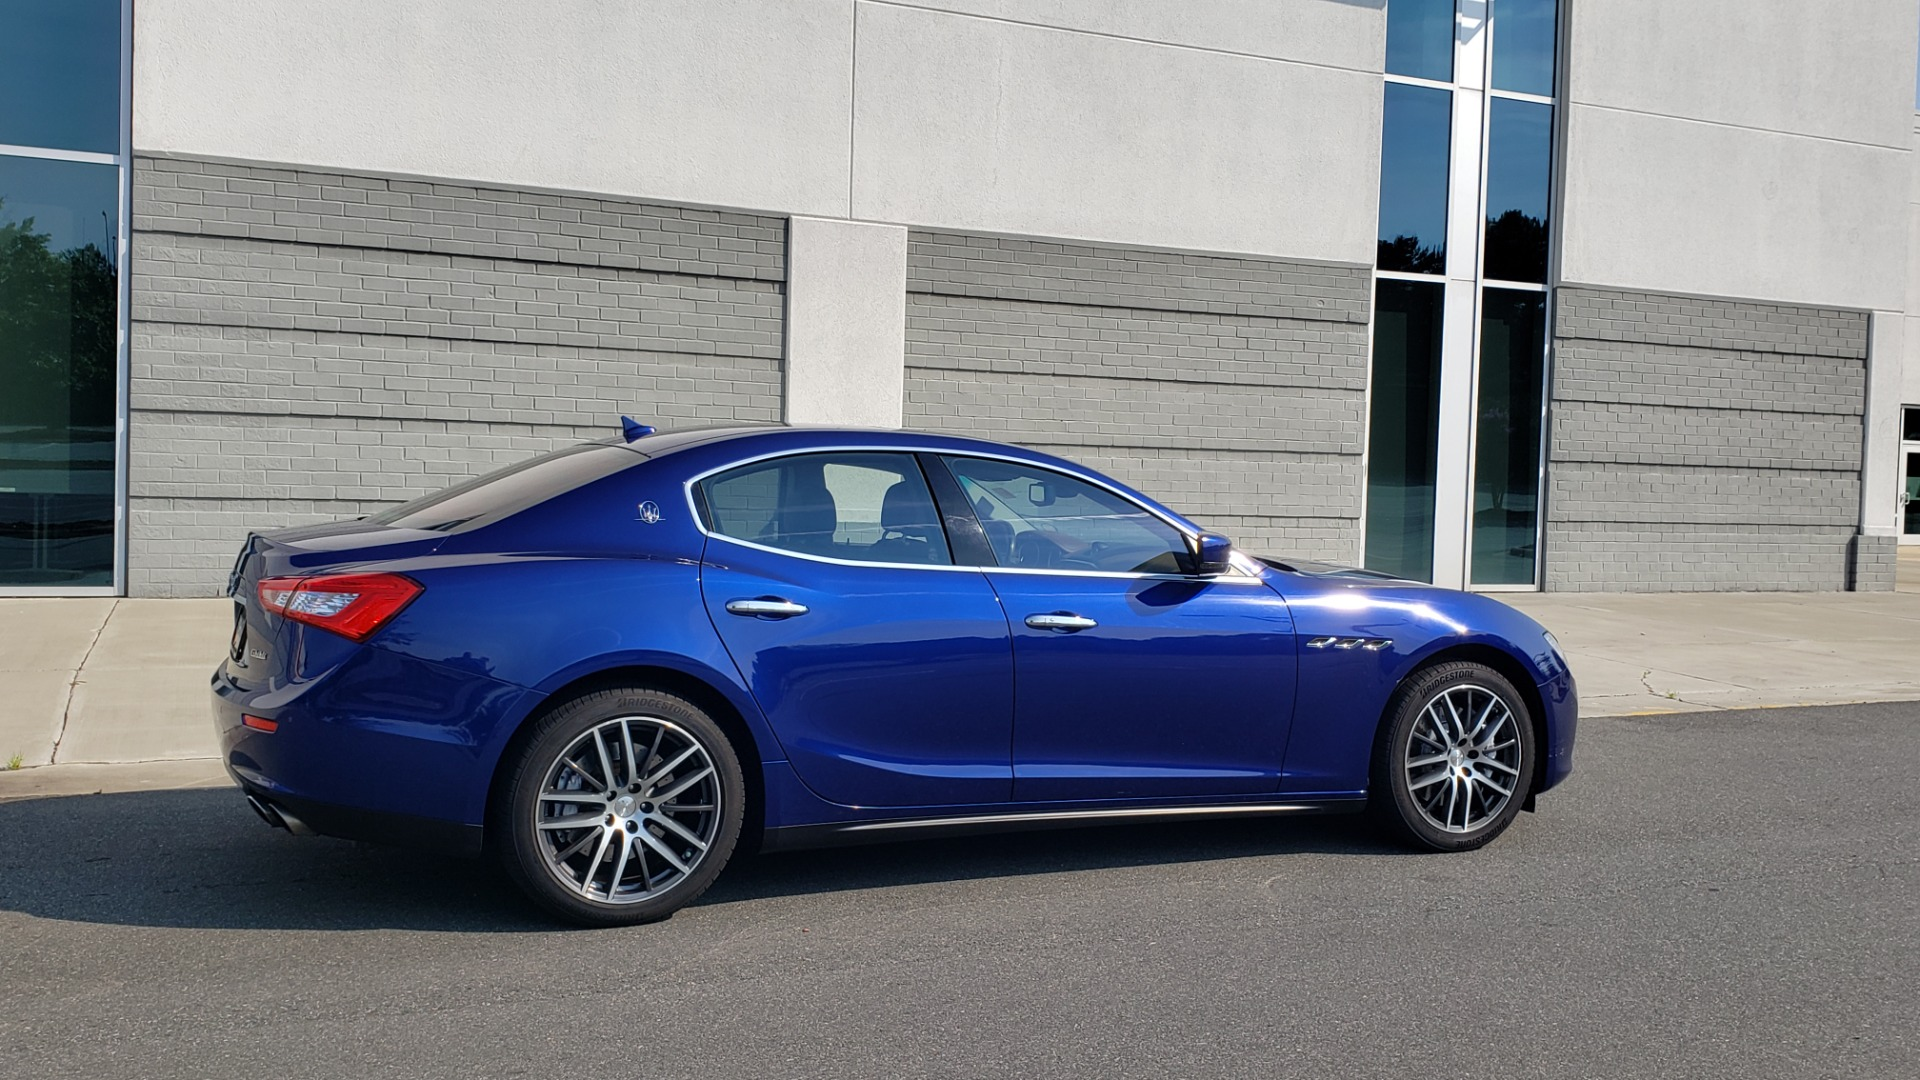 Used 2015 Maserati GHIBLI SEDAN / 3.0L V6 / 8-SPD AUTO / NAV / HTD STS / SUNROOF / REARVIEW for sale $24,495 at Formula Imports in Charlotte NC 28227 8